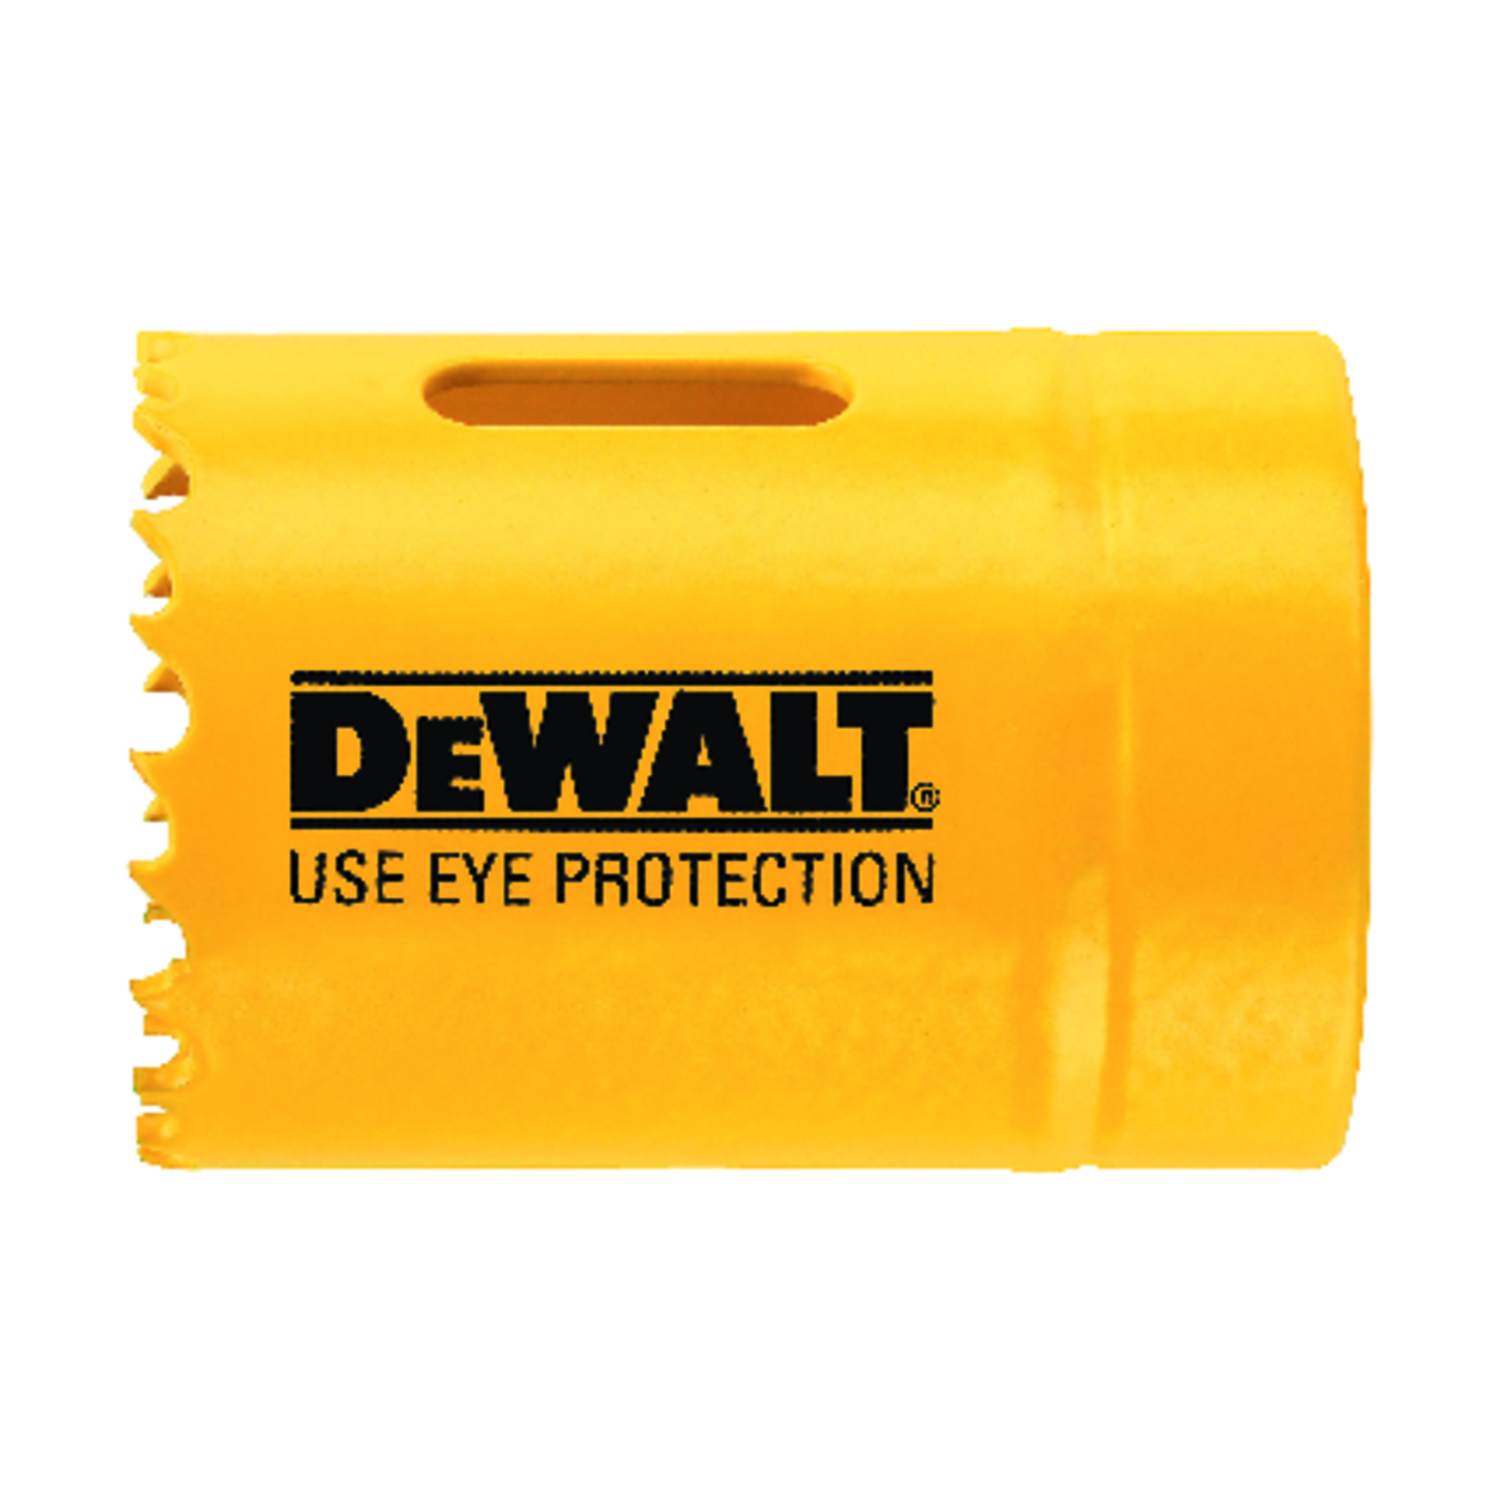 DeWalt  1-1/2 in. Dia. x 1.75 in. L Bi-Metal  Hole Saw  1/4 in. 1 pc.